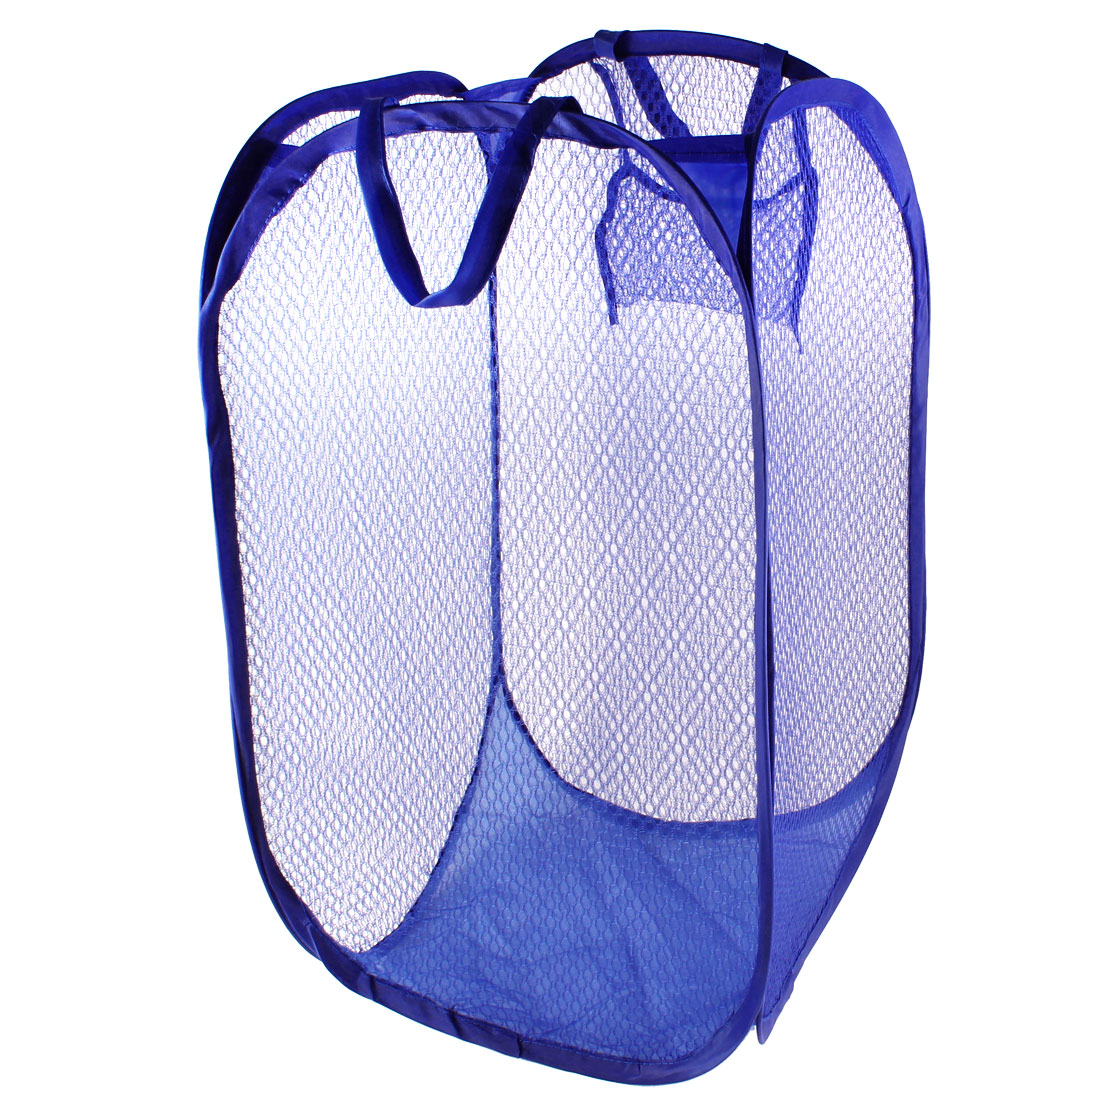 Unique Bargains Home Dark Blue Meshy Basket Clothing Underwear Folded Basket Bag Container